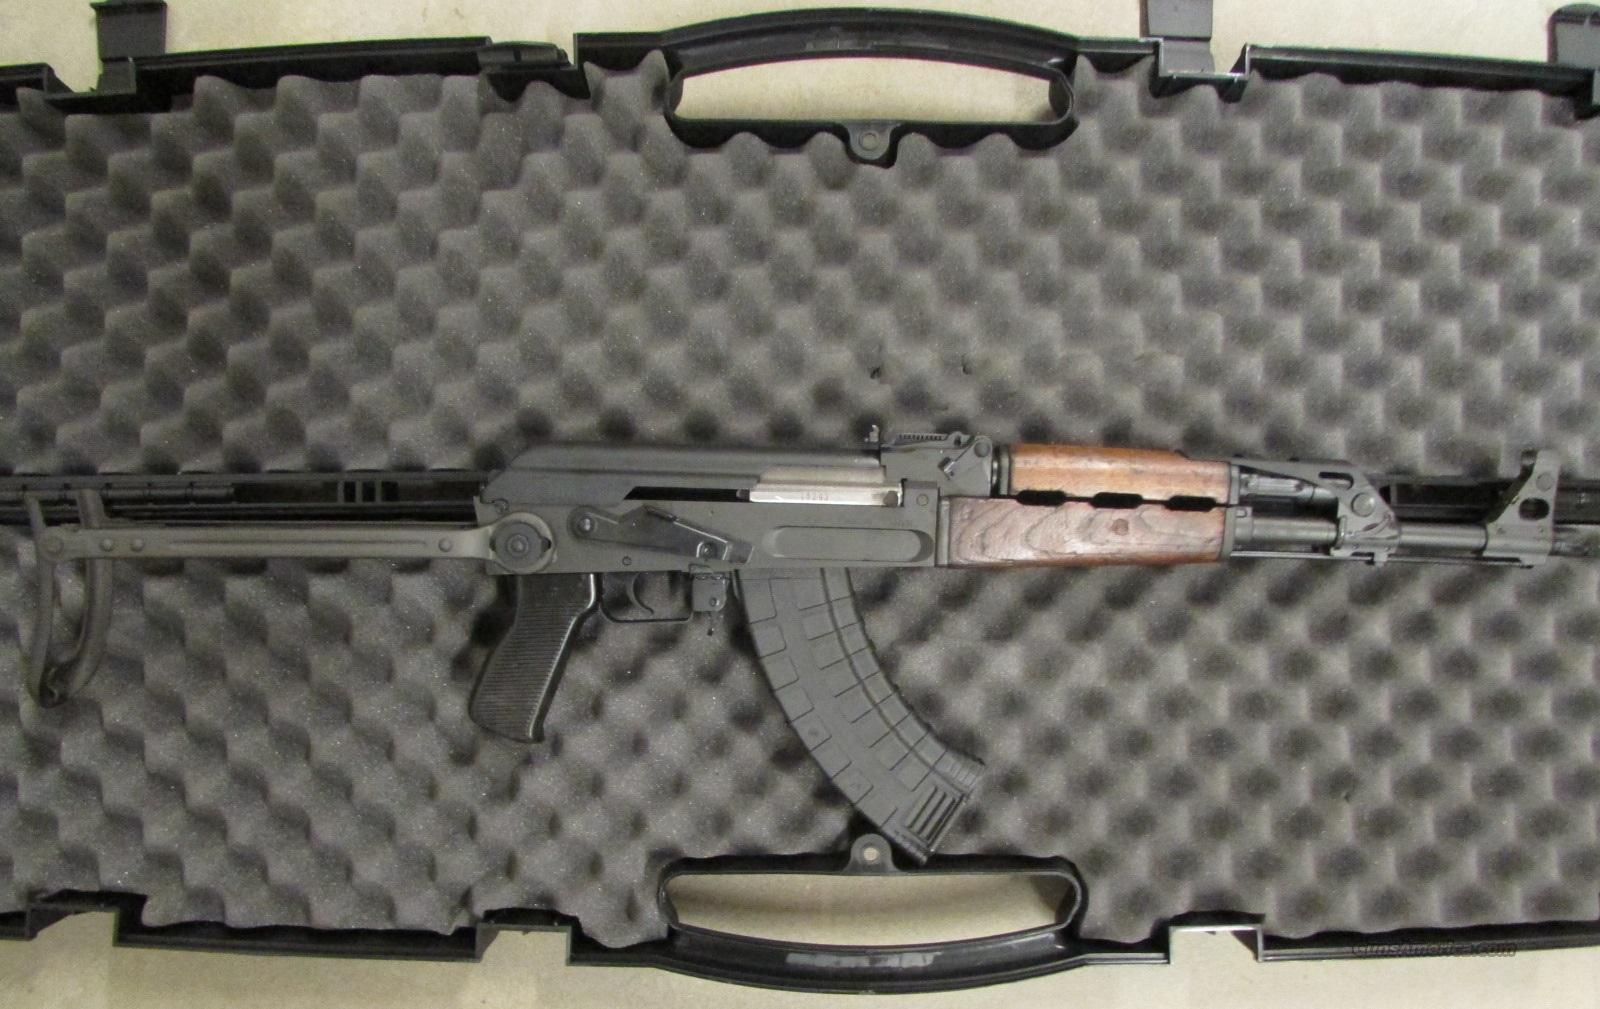 American Tactical Imports AK-47 Gen 2 7.62X39  Guns > Rifles > American Tactical Imports Rifles